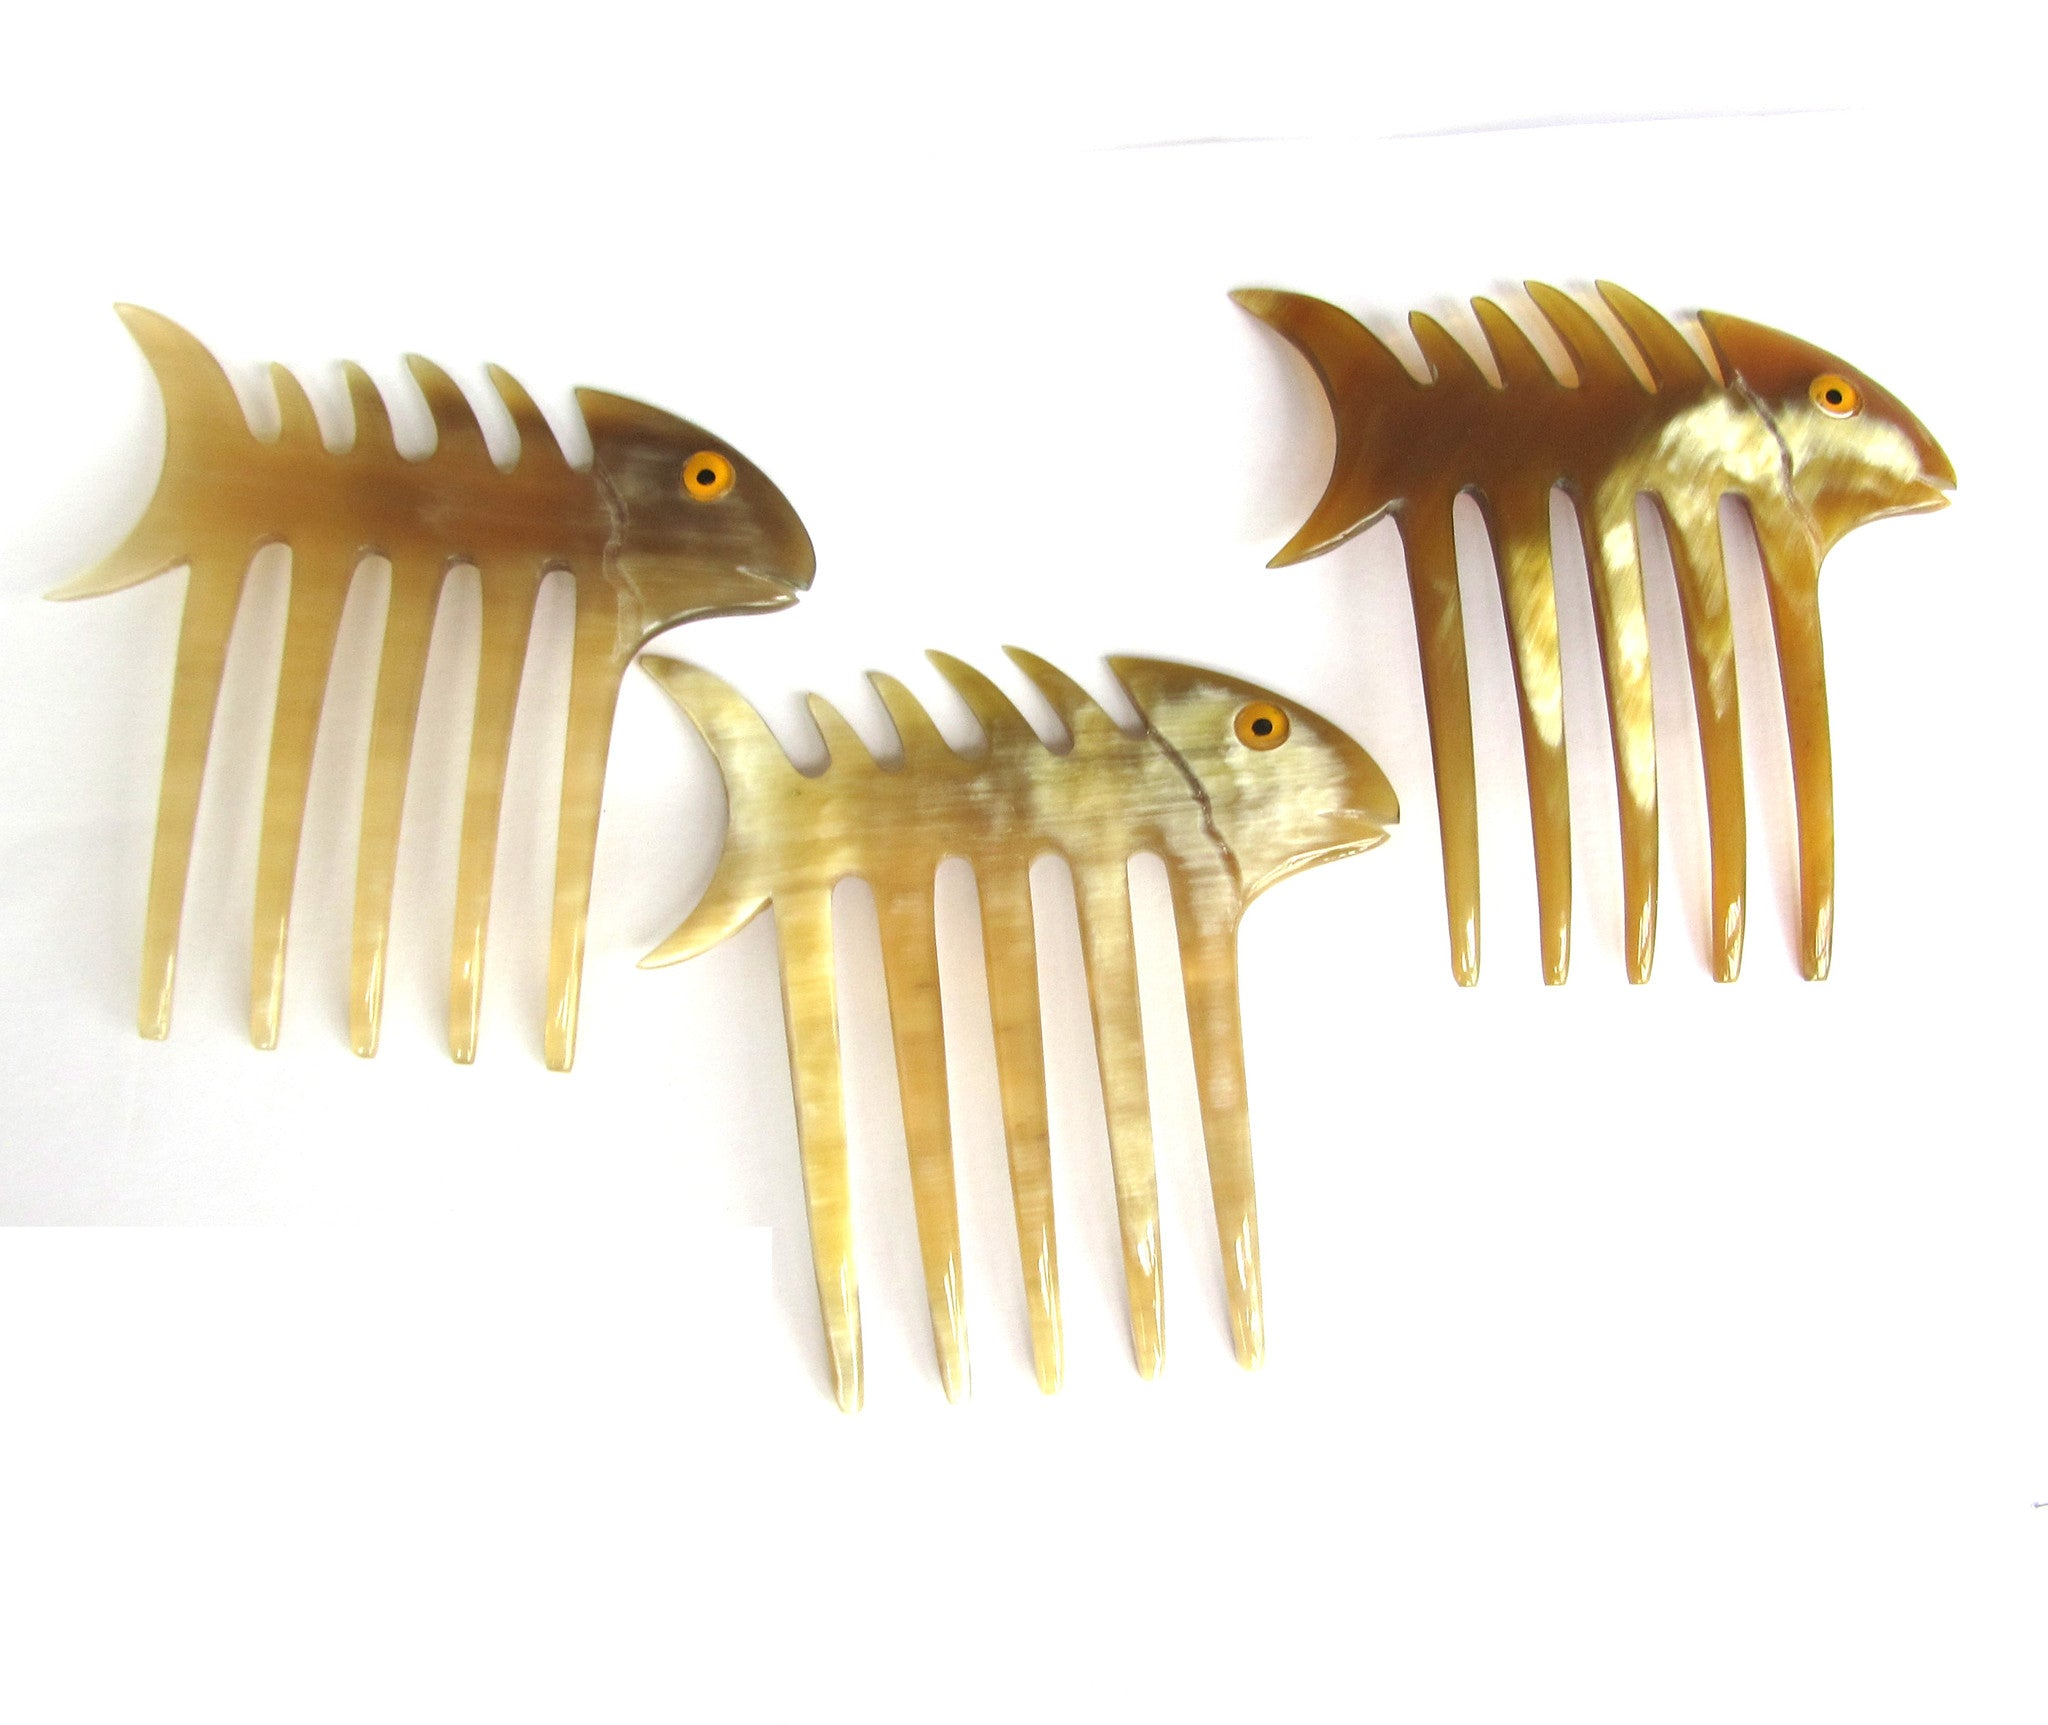 Fish bone hair comb 5 prong hair fork